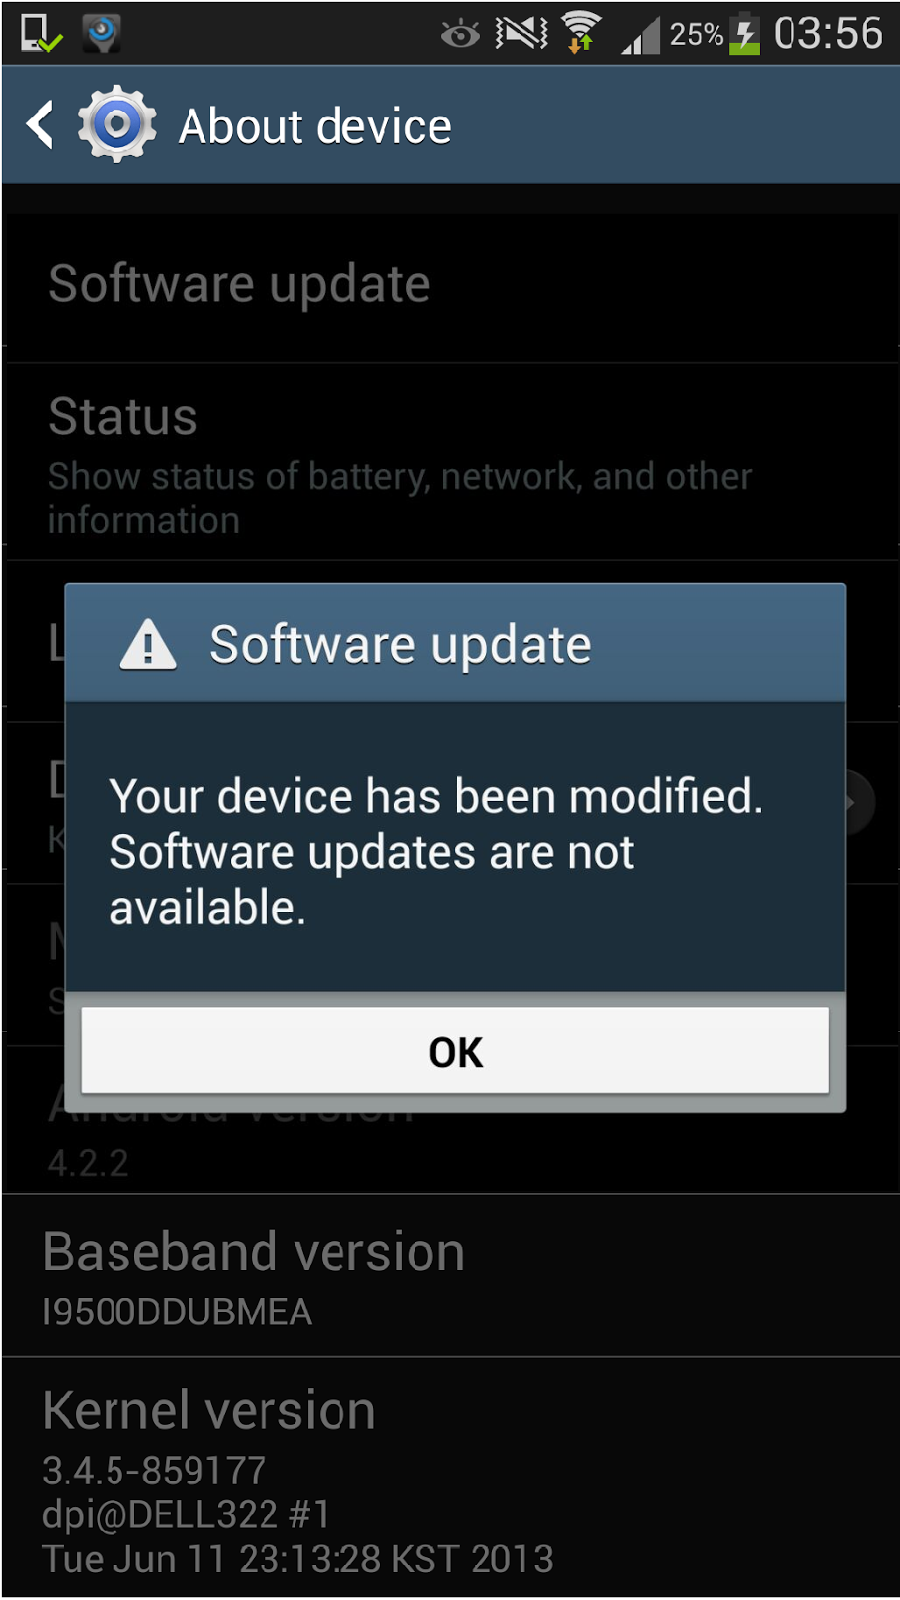 samsung galaxy s4 update your device has been modified